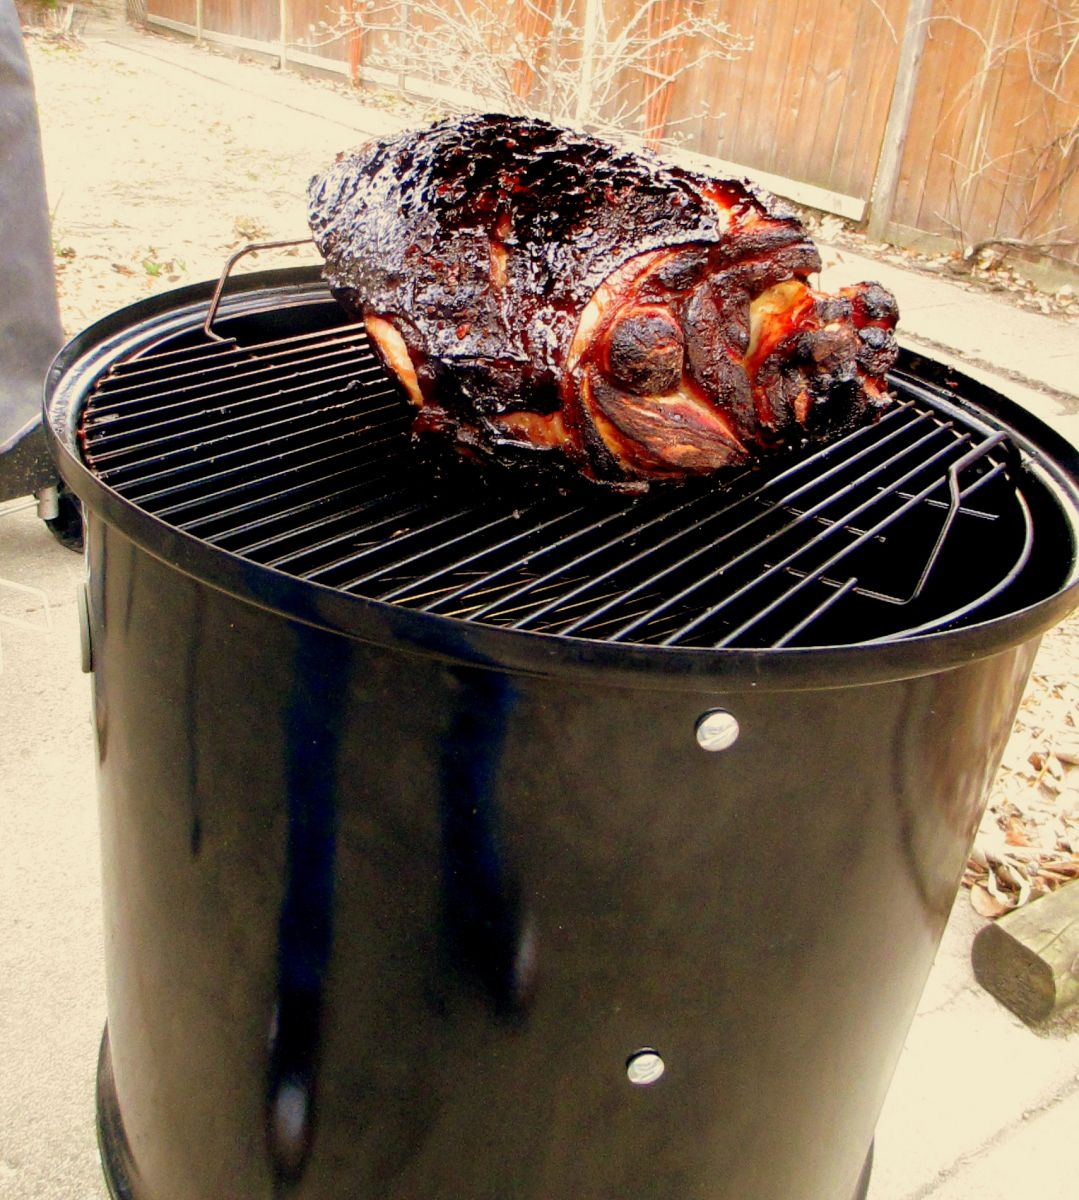 Pecan Smoked Fresh Ham With Maple Glaze On The Wsm Grilling